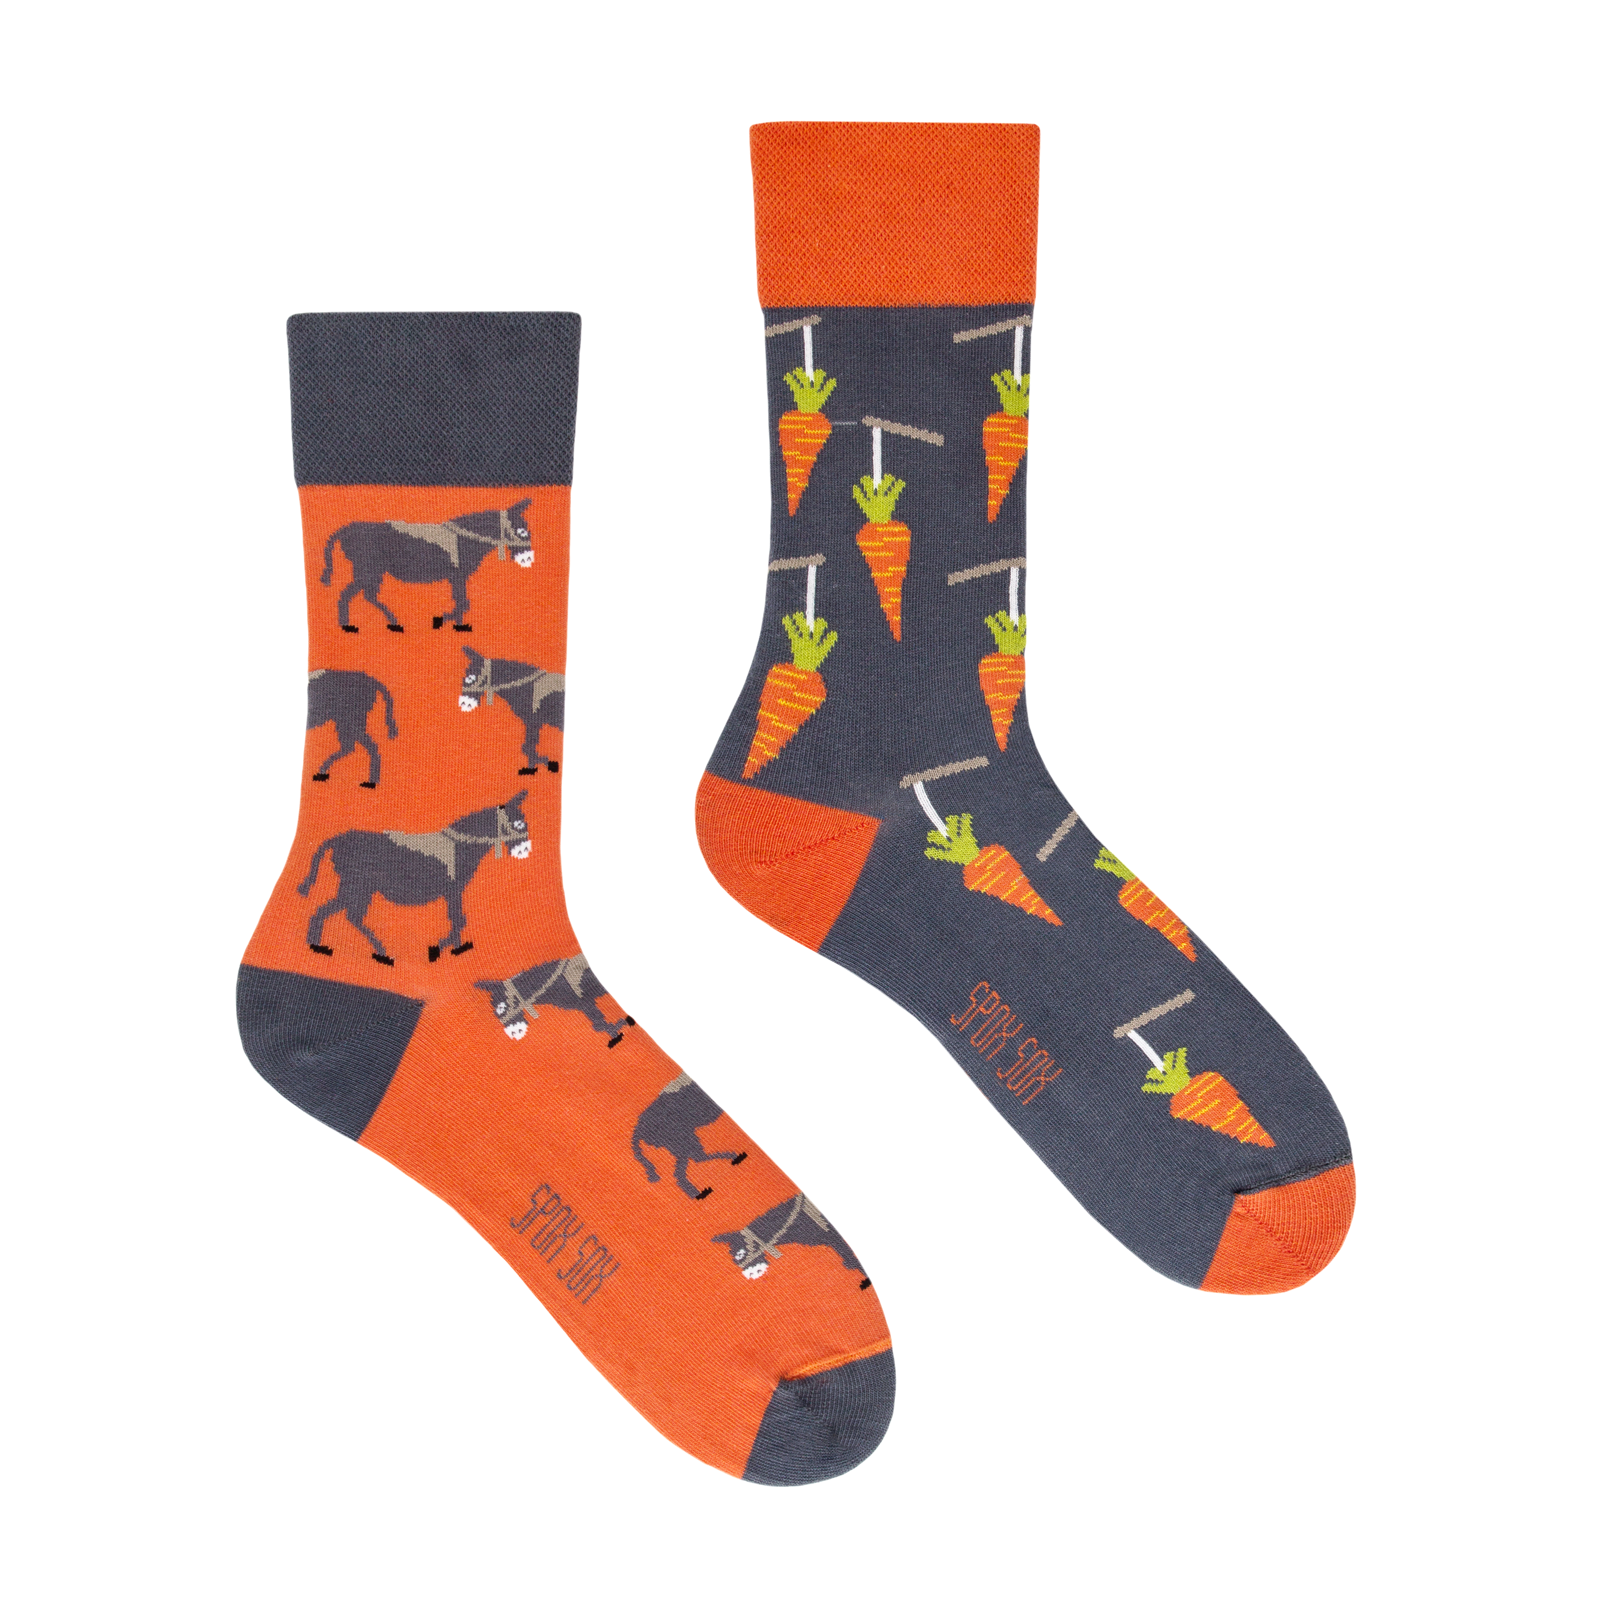 King Stone Socks Stick and Carrot